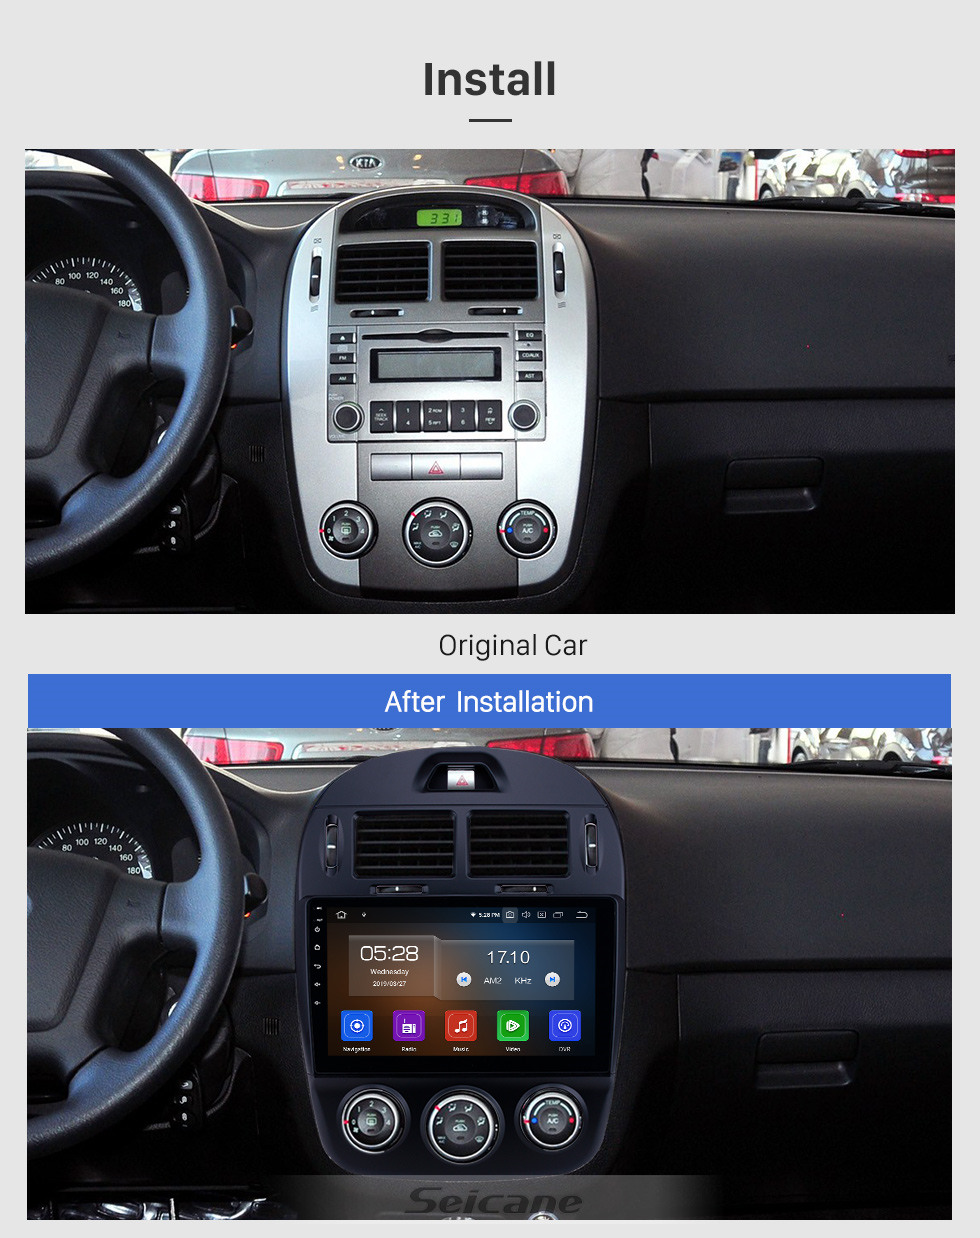 Seicane 10.1 inch Android 10.0 GPS Navigation Radio for 2017-2019 Kia Cerato Manual A/C Bluetooth Wifi HD Touchscreen Music Carplay support Backup camera 1080P